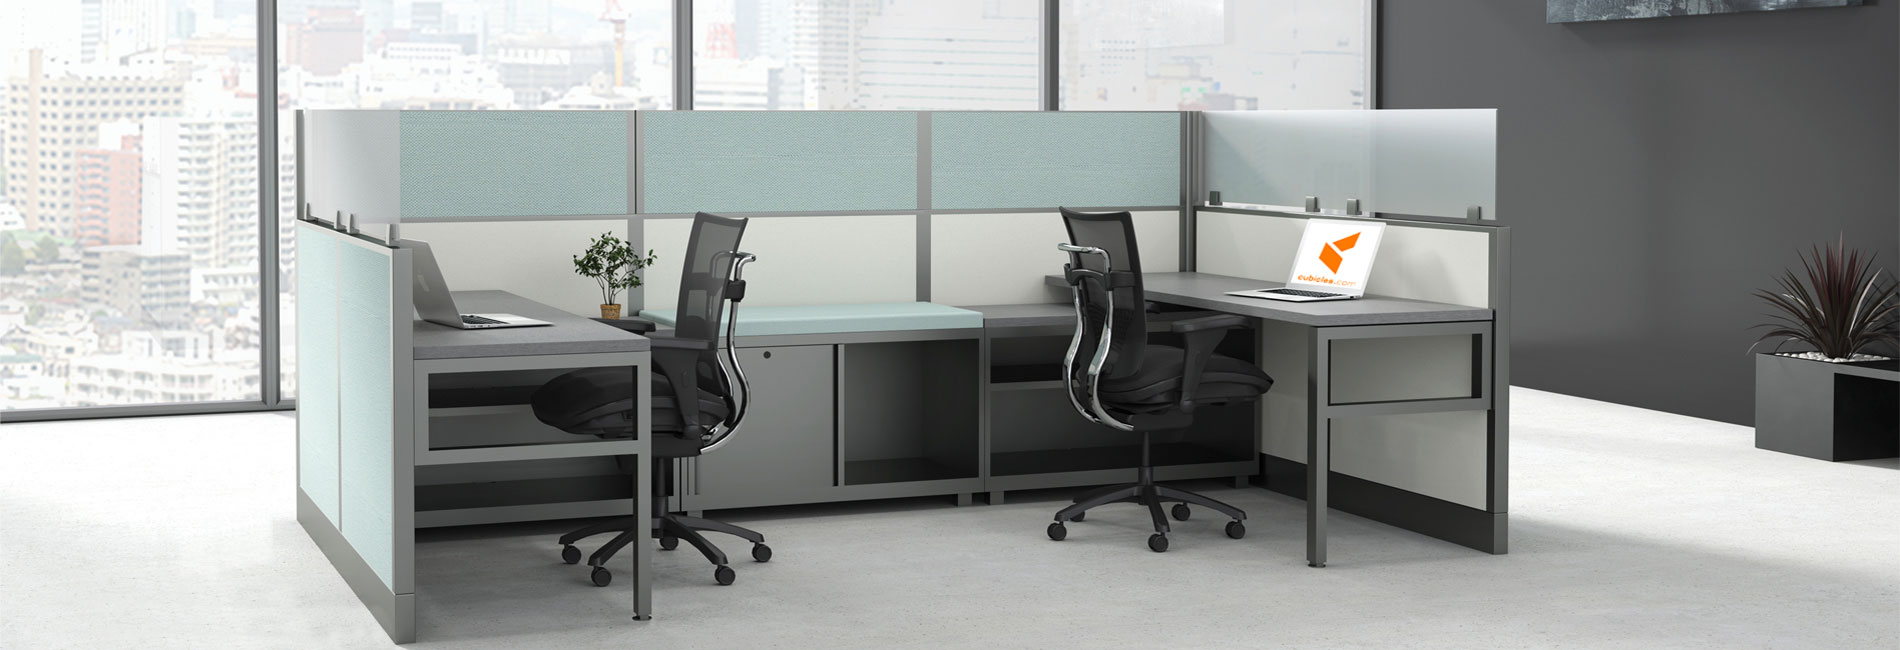 O2 Series Corporate Office Furniture